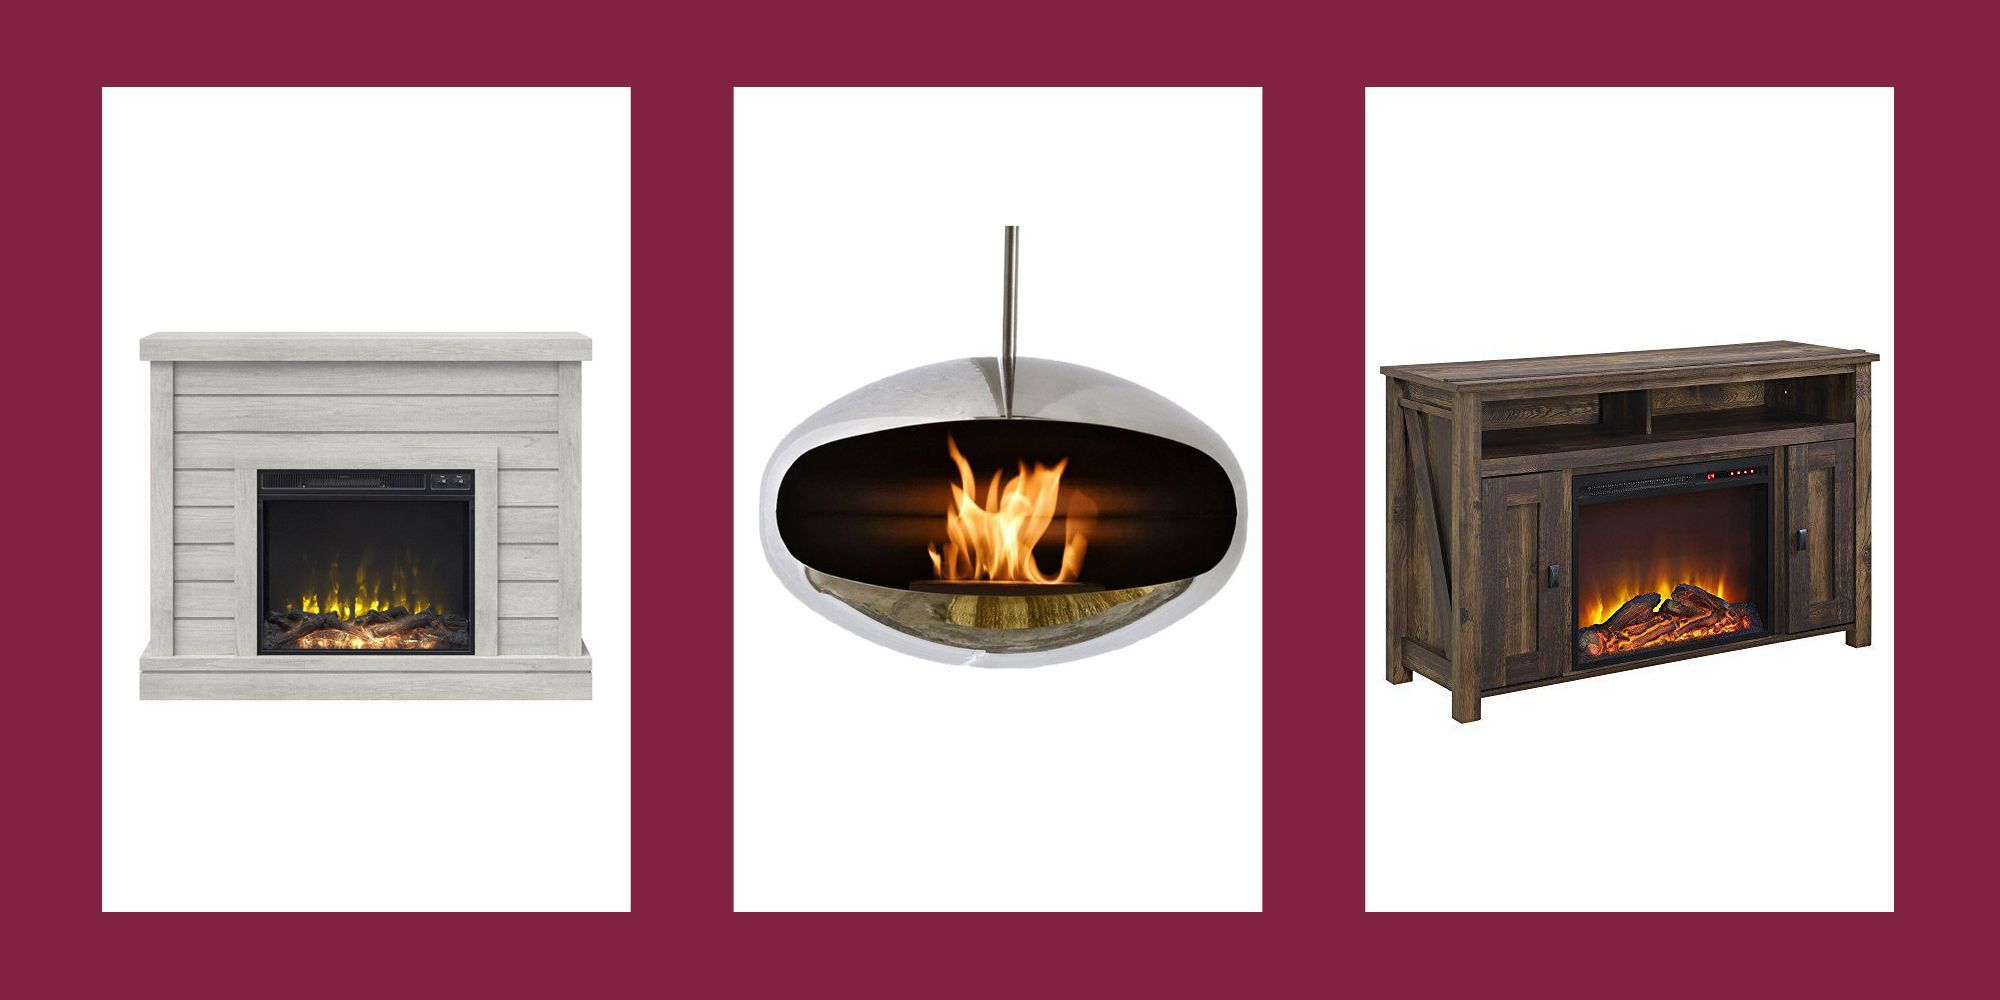 10 Electric Fireplaces That Look (and Feel) So Real